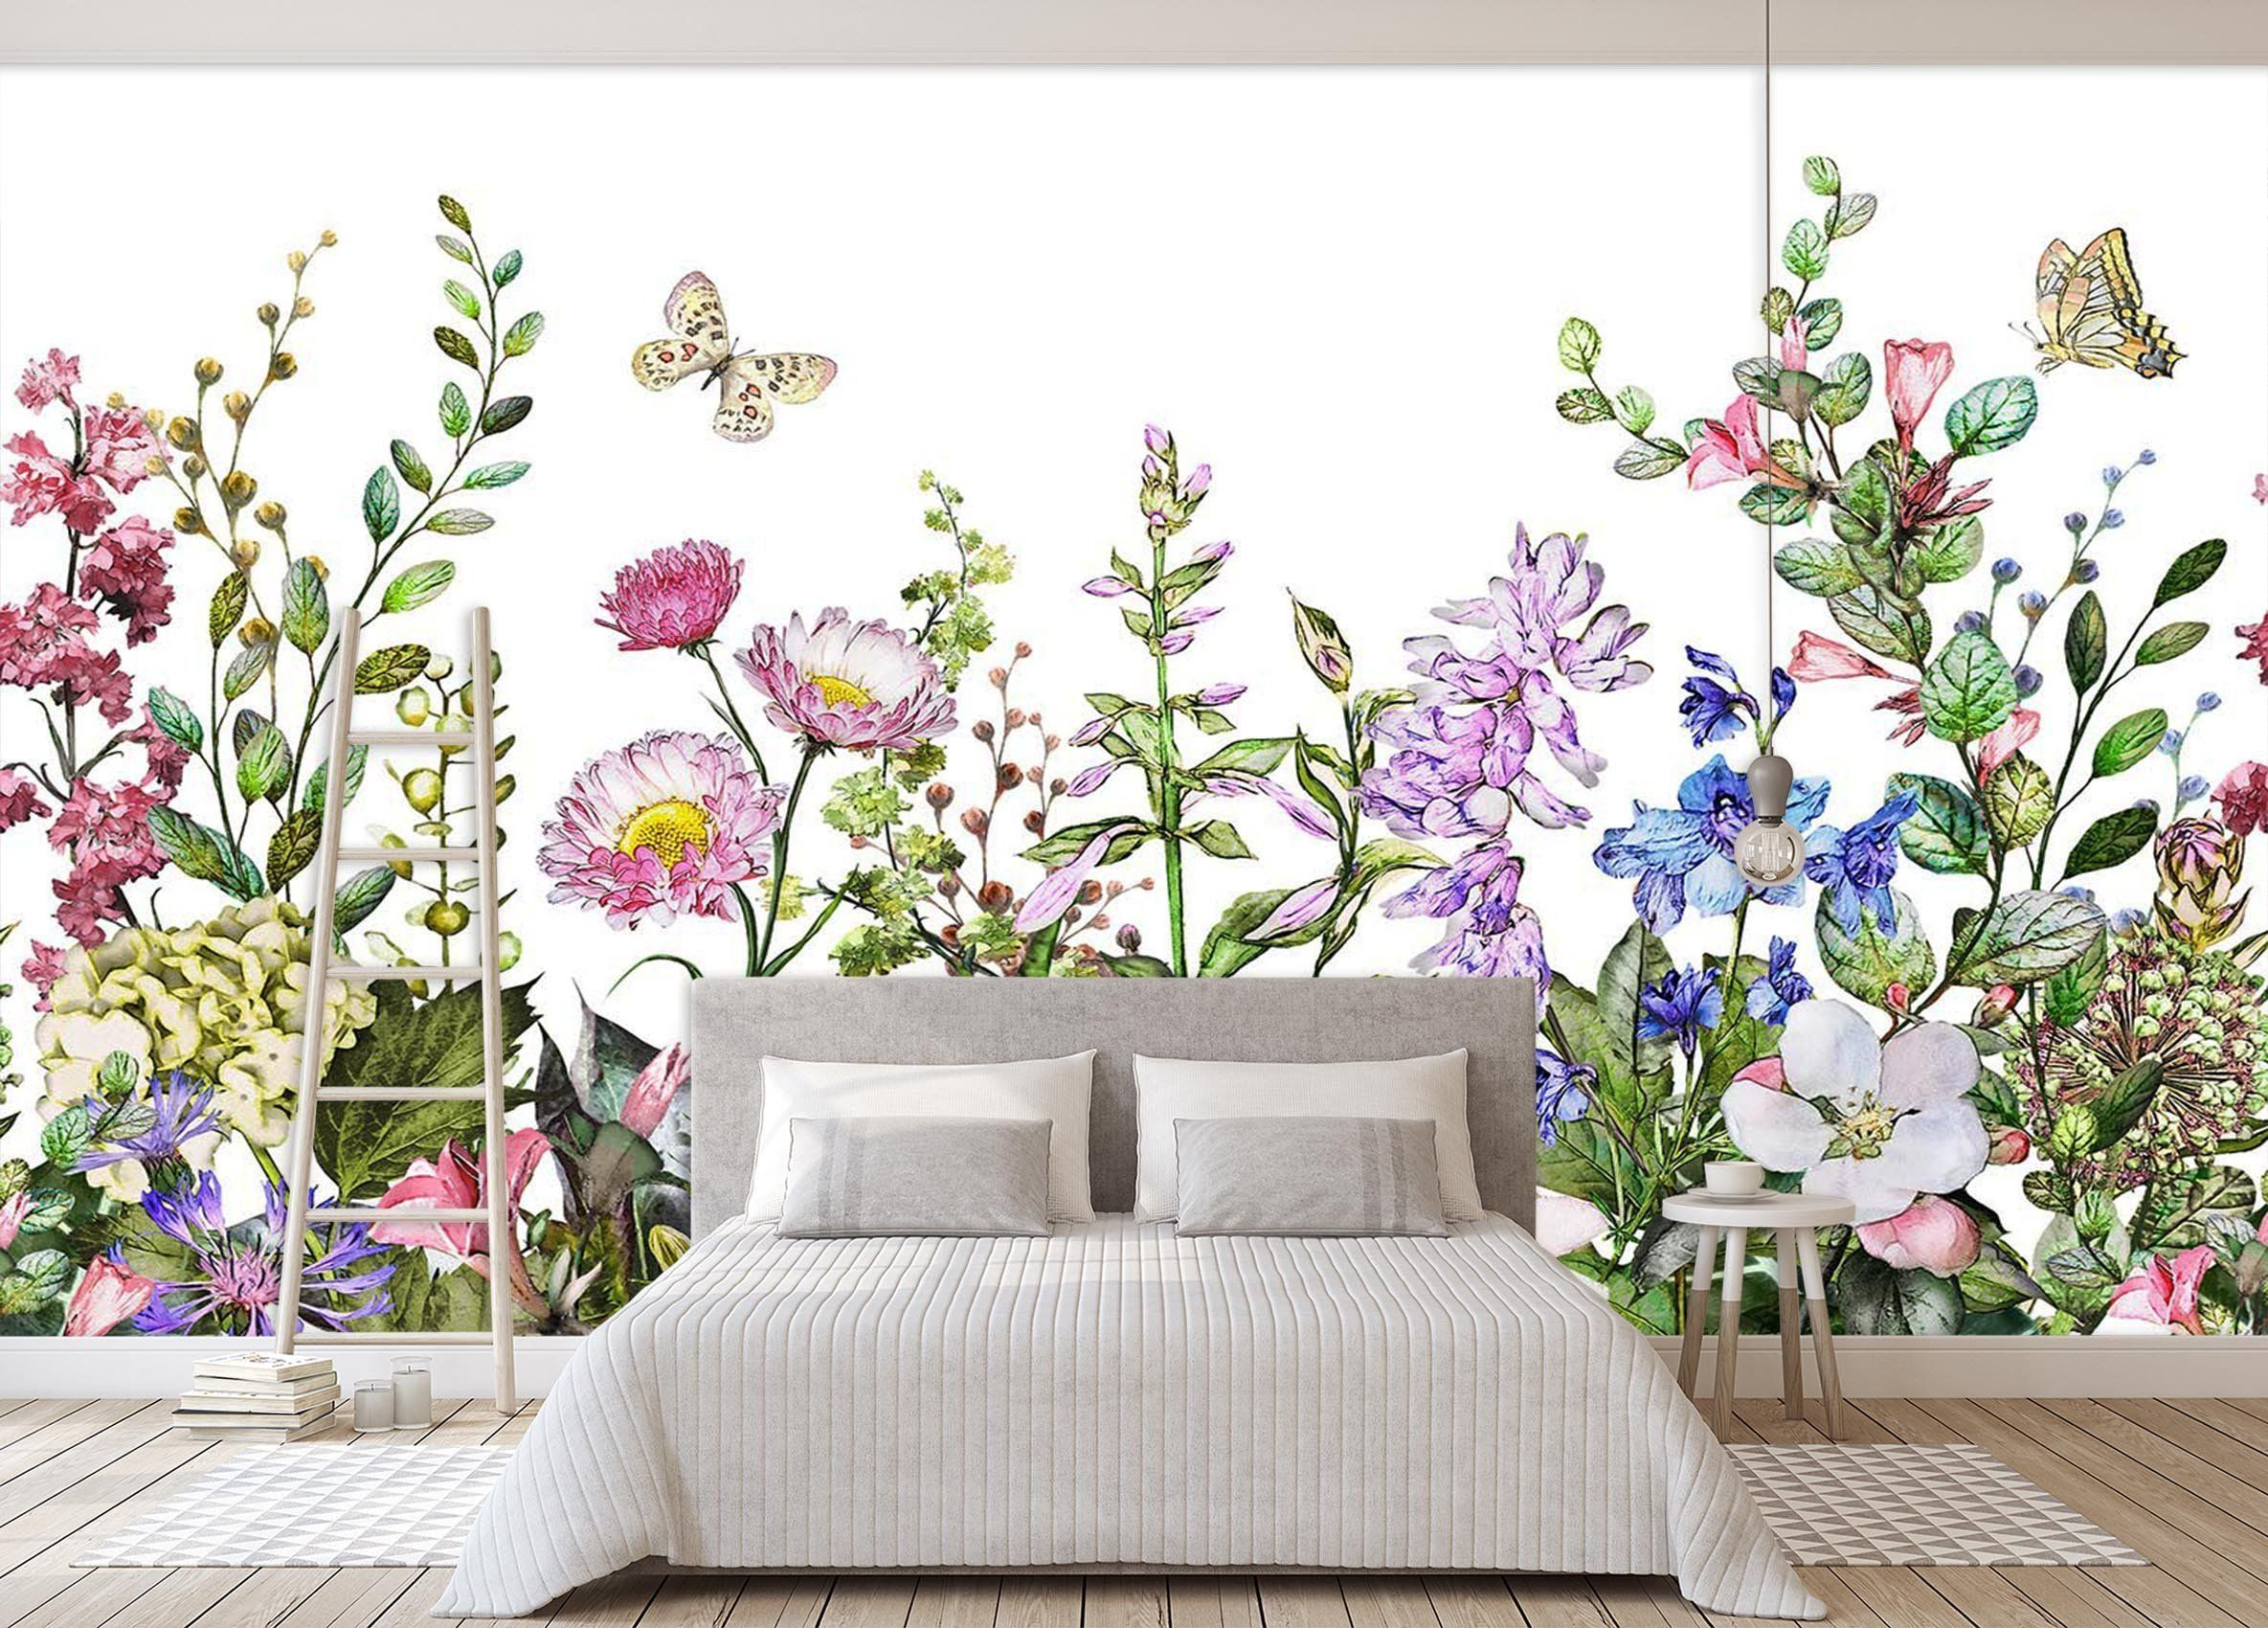 Customize Wall Mural in 2020 Wall murals, Traditional